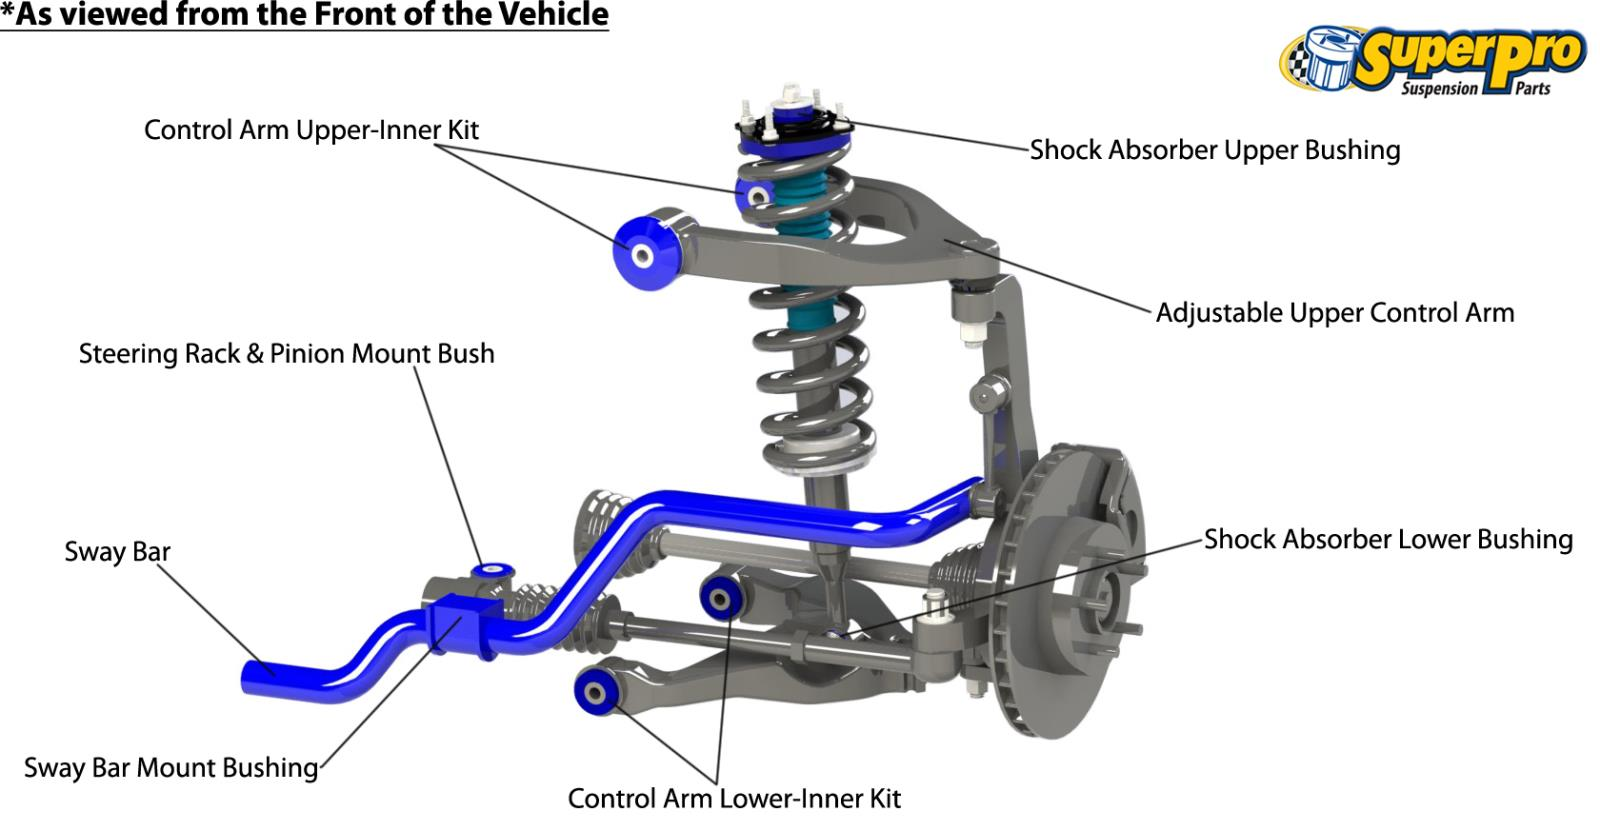 Front suspension diagram for LAND ROVER DISCOVERY 2009-2016 - Series 4